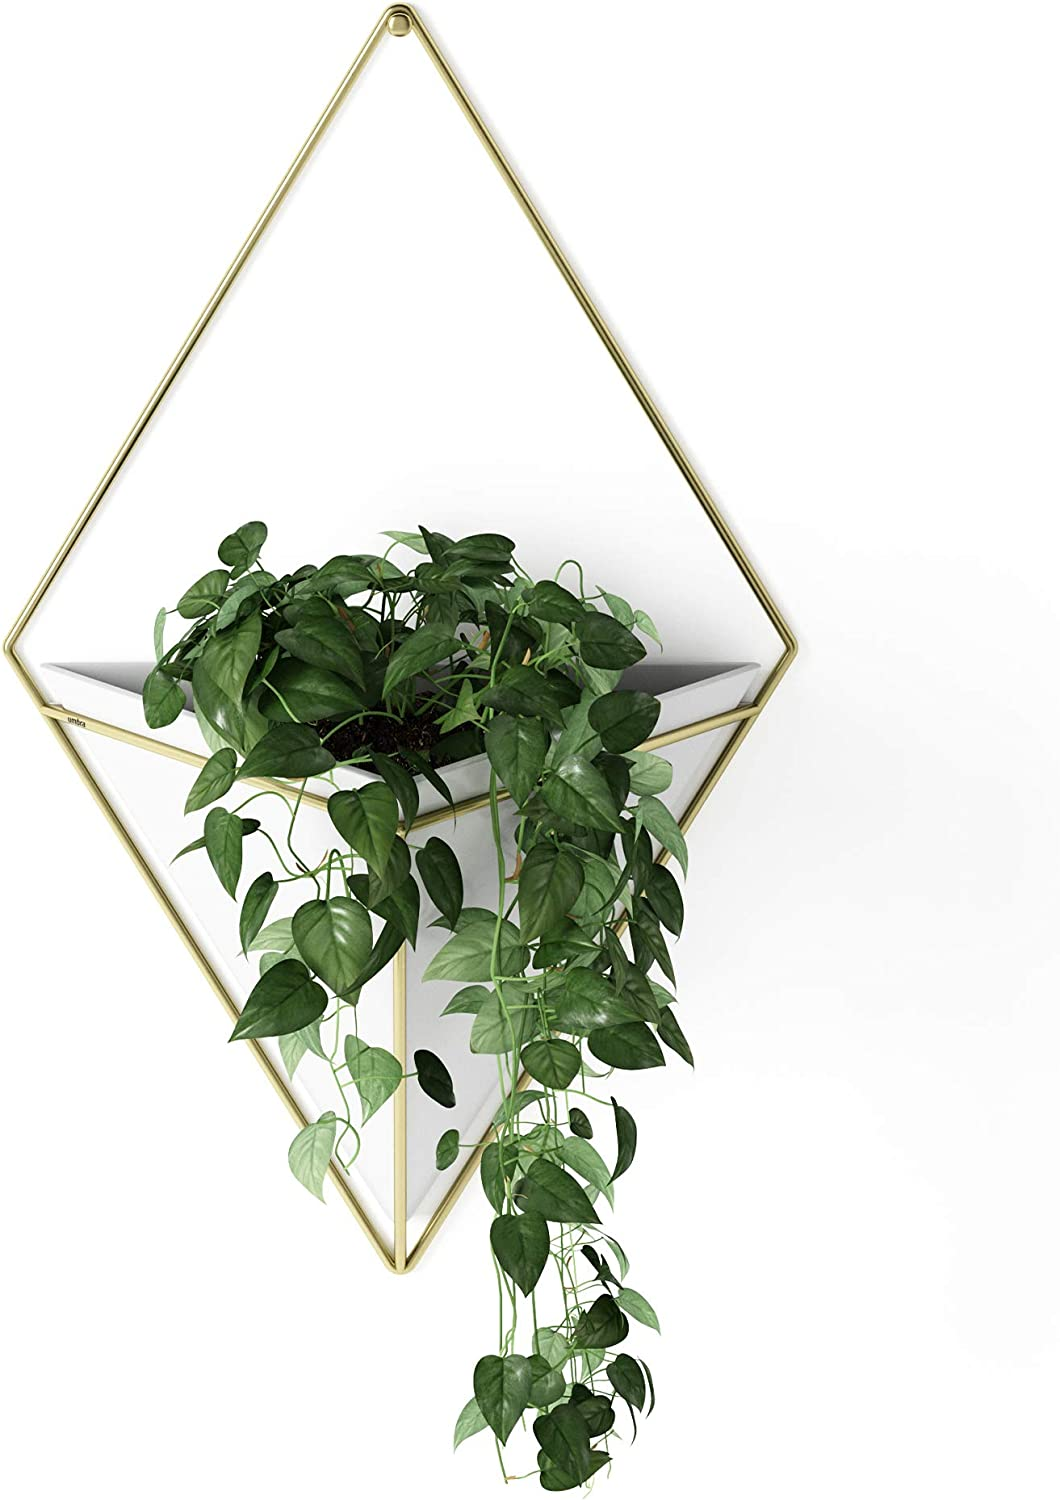 Umbra Trigg Hanging Planter Vase & Geometric Wall Decor Container - Great For Succulent Plants, Air Plant, Mini Cactus, Faux Plants and More, White Ceramic/Brass: Home & Kitchen